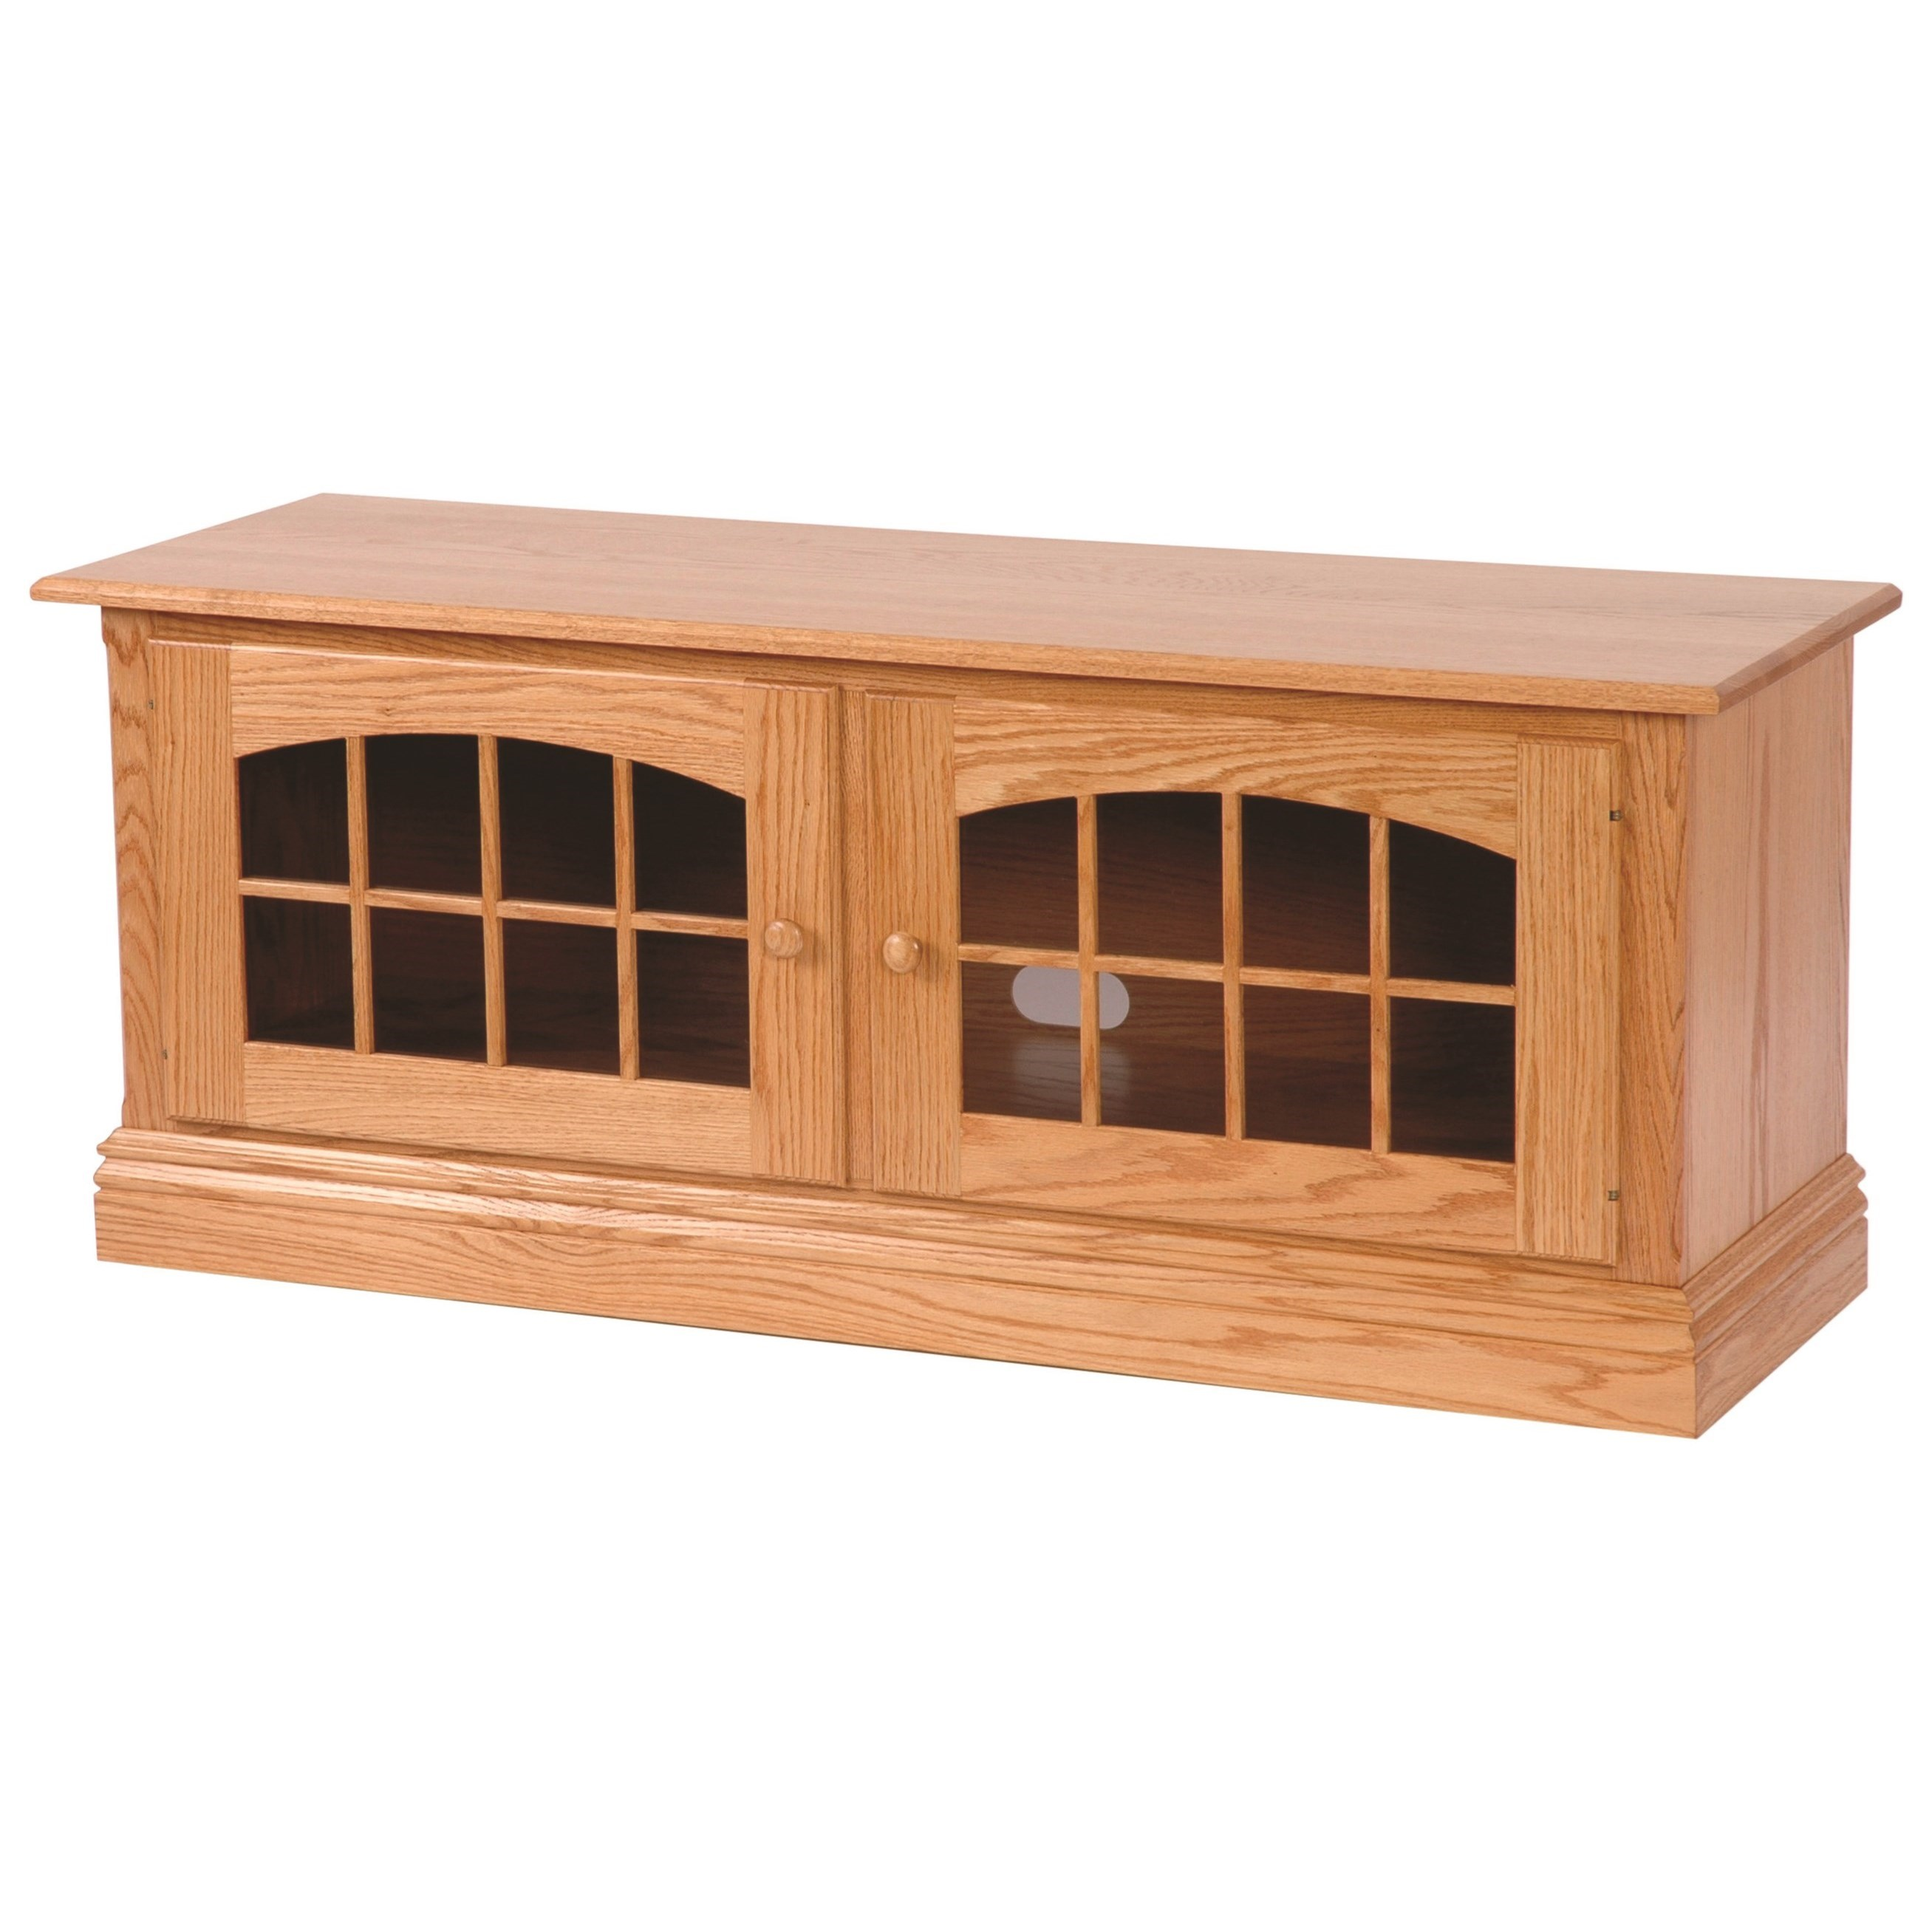 """Entertainment Rockford 54"""" TV Stand by INTEG Wood Products at Saugerties Furniture Mart"""